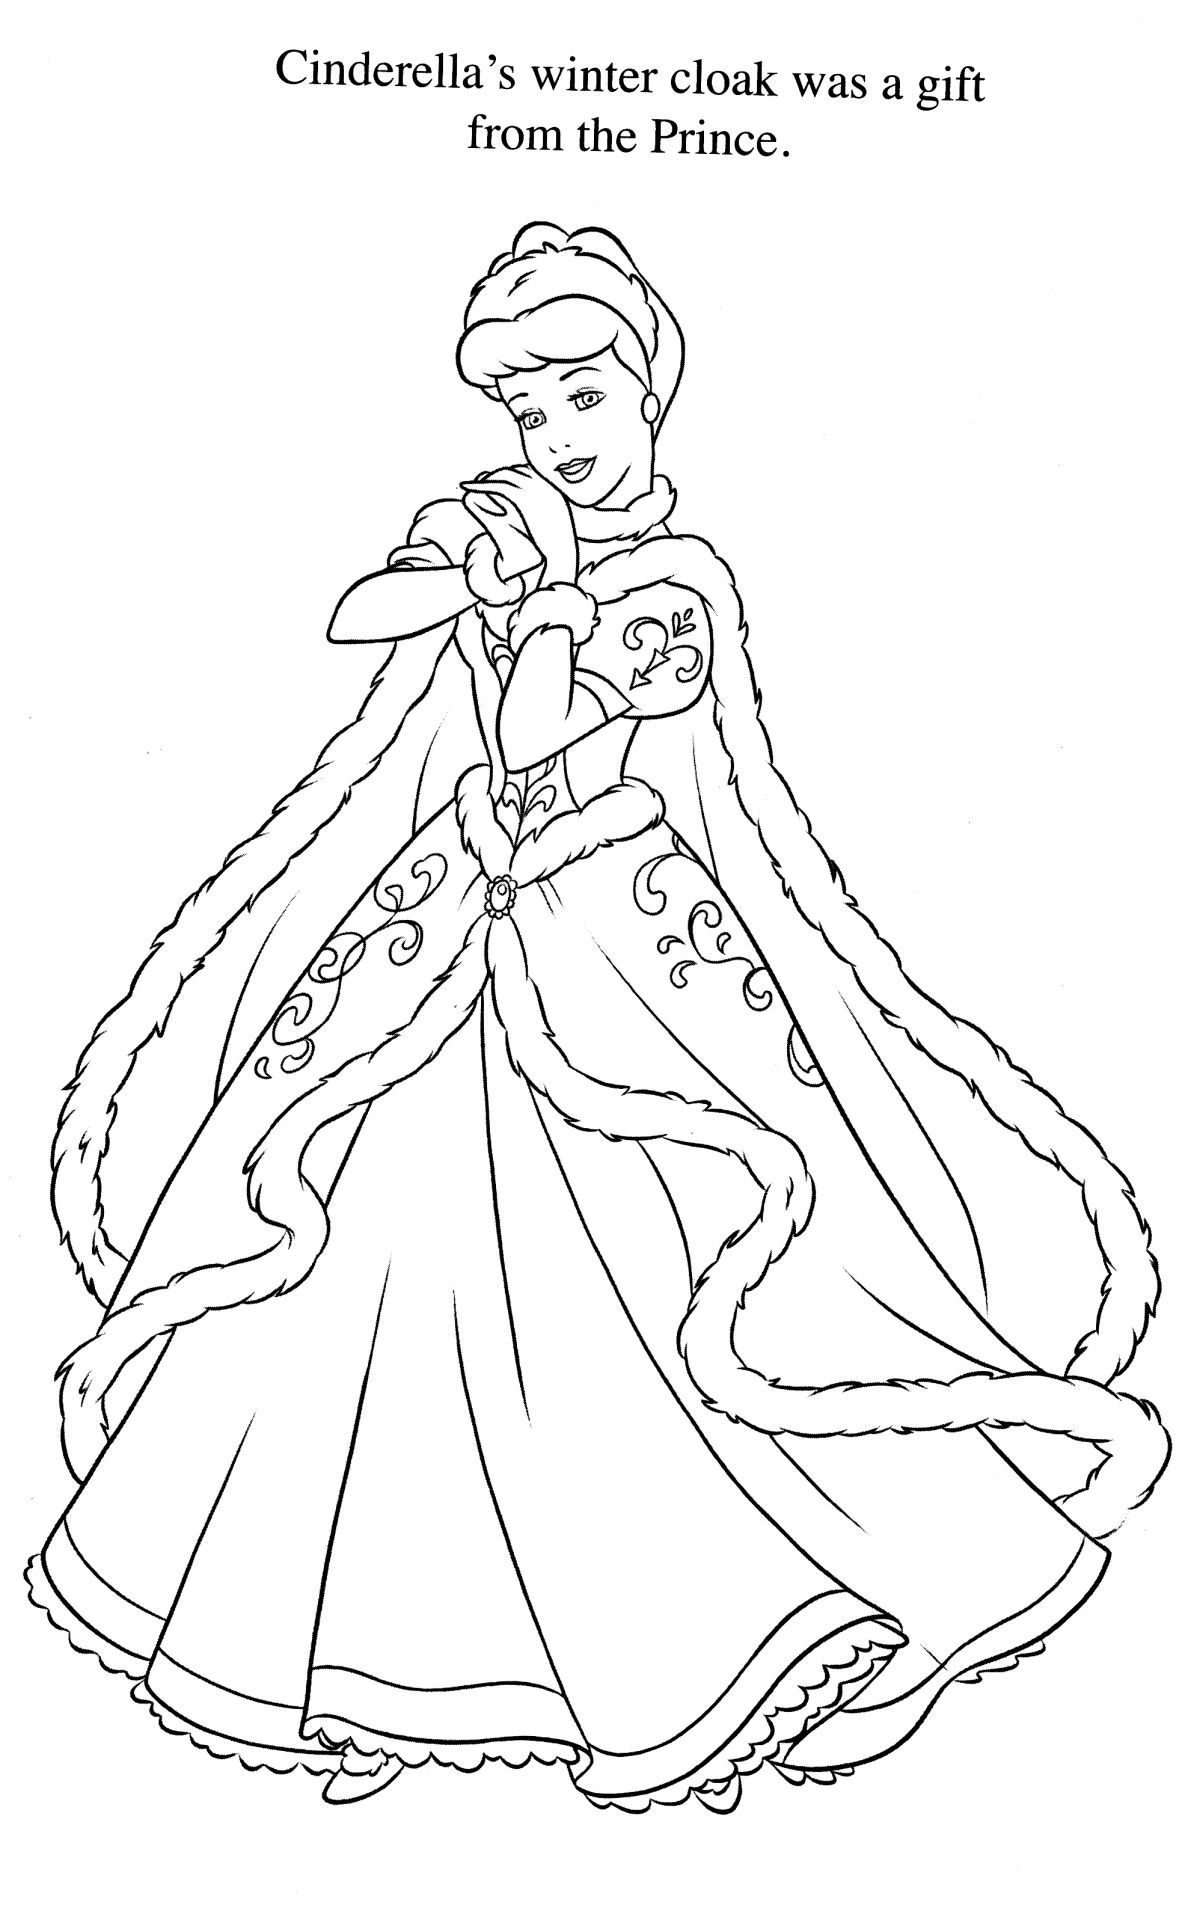 Disney Coloring Pages Disney Princess Coloring Pages Cinderella Coloring Pages Disney Princess Colors